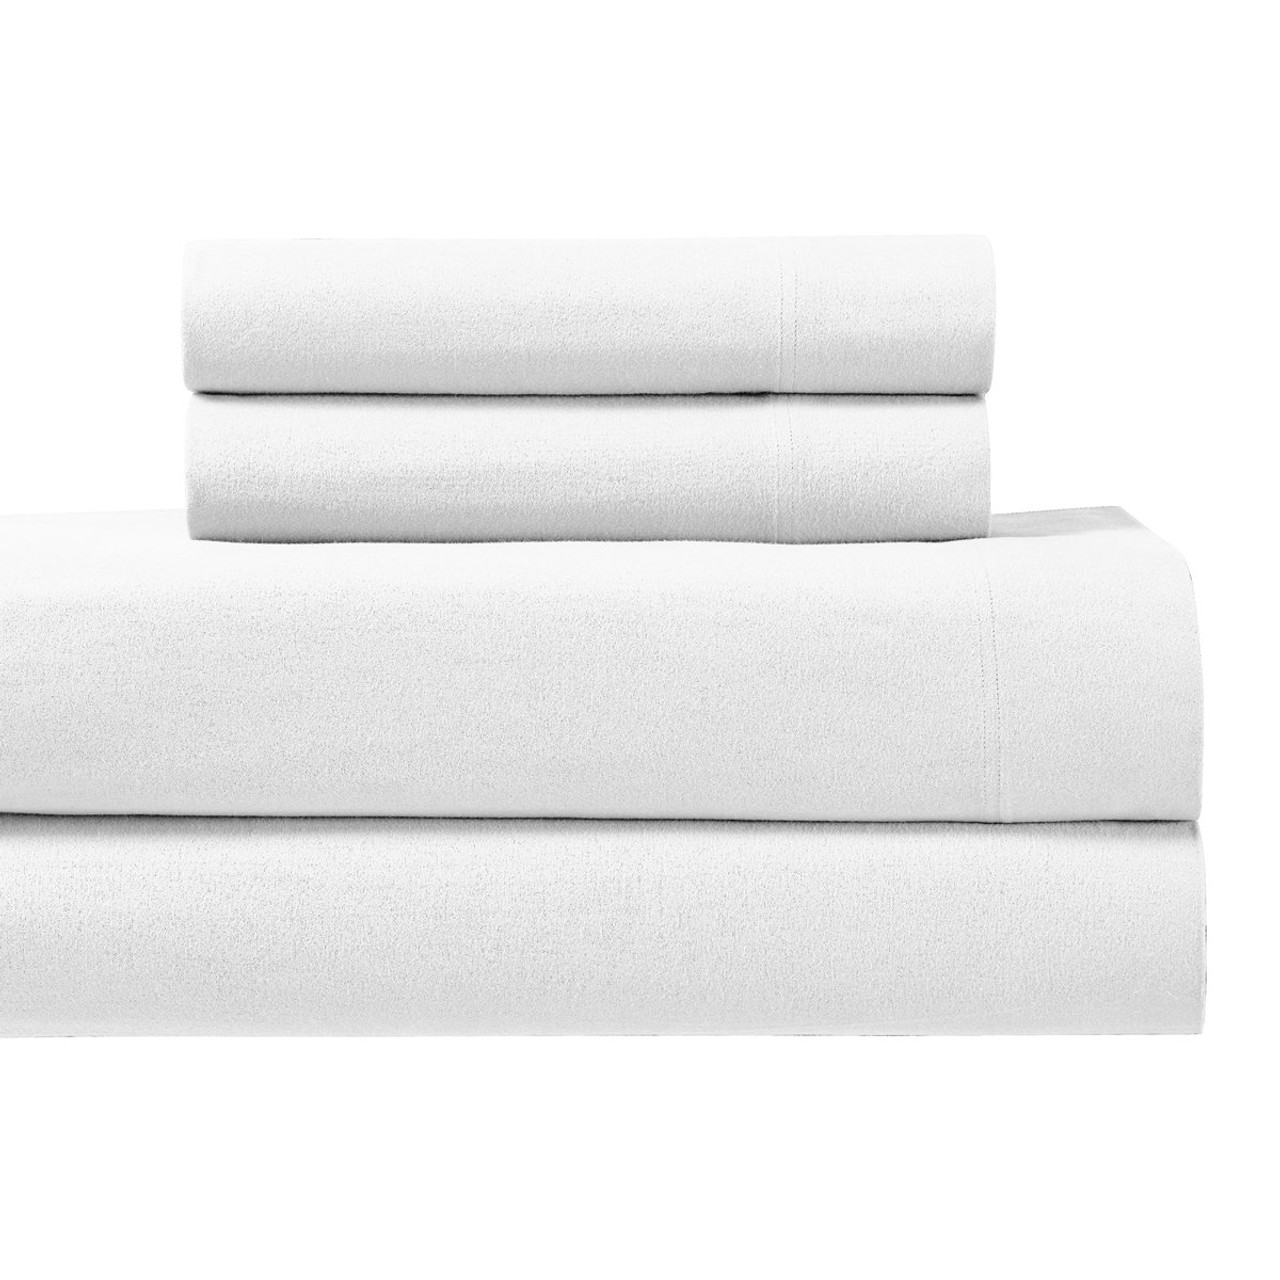 California King Flannel Sheets Ultra Soft Warm Cotton Cal King